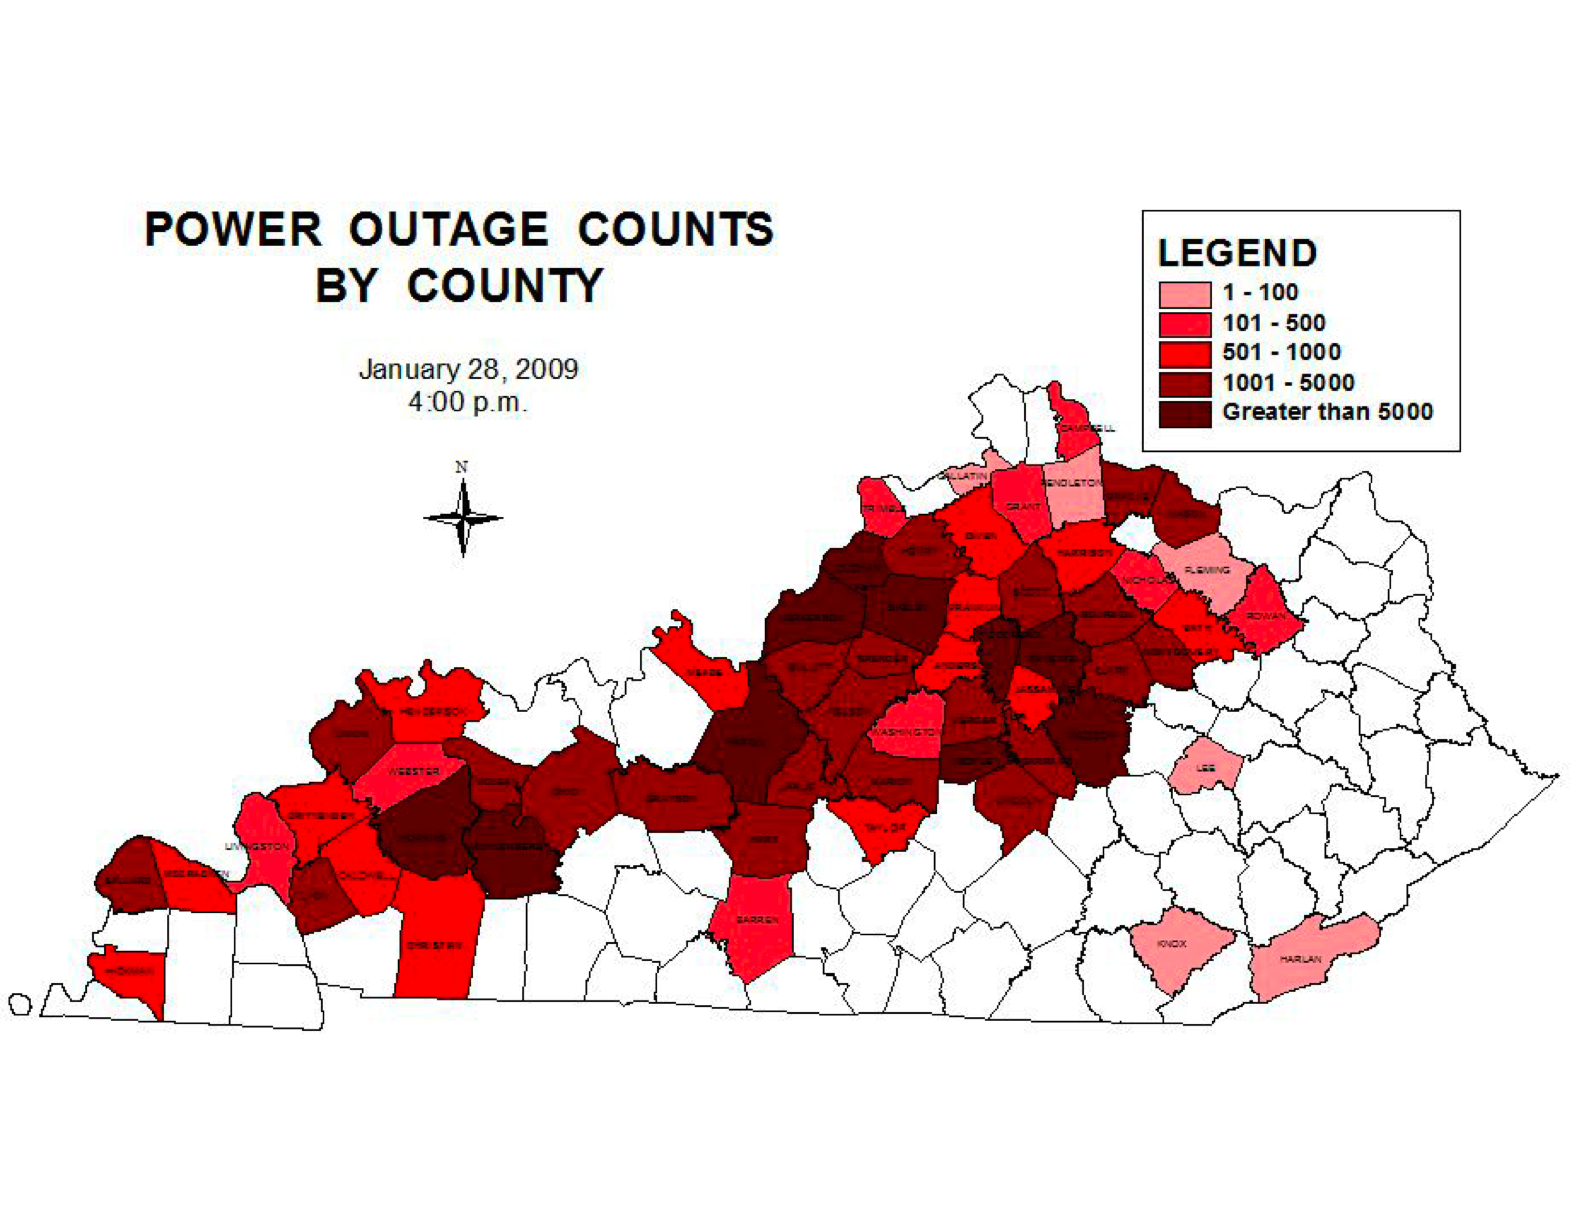 Kentucky Power Outage Map Jan 28 2009 4pm Edward Vielmetti S